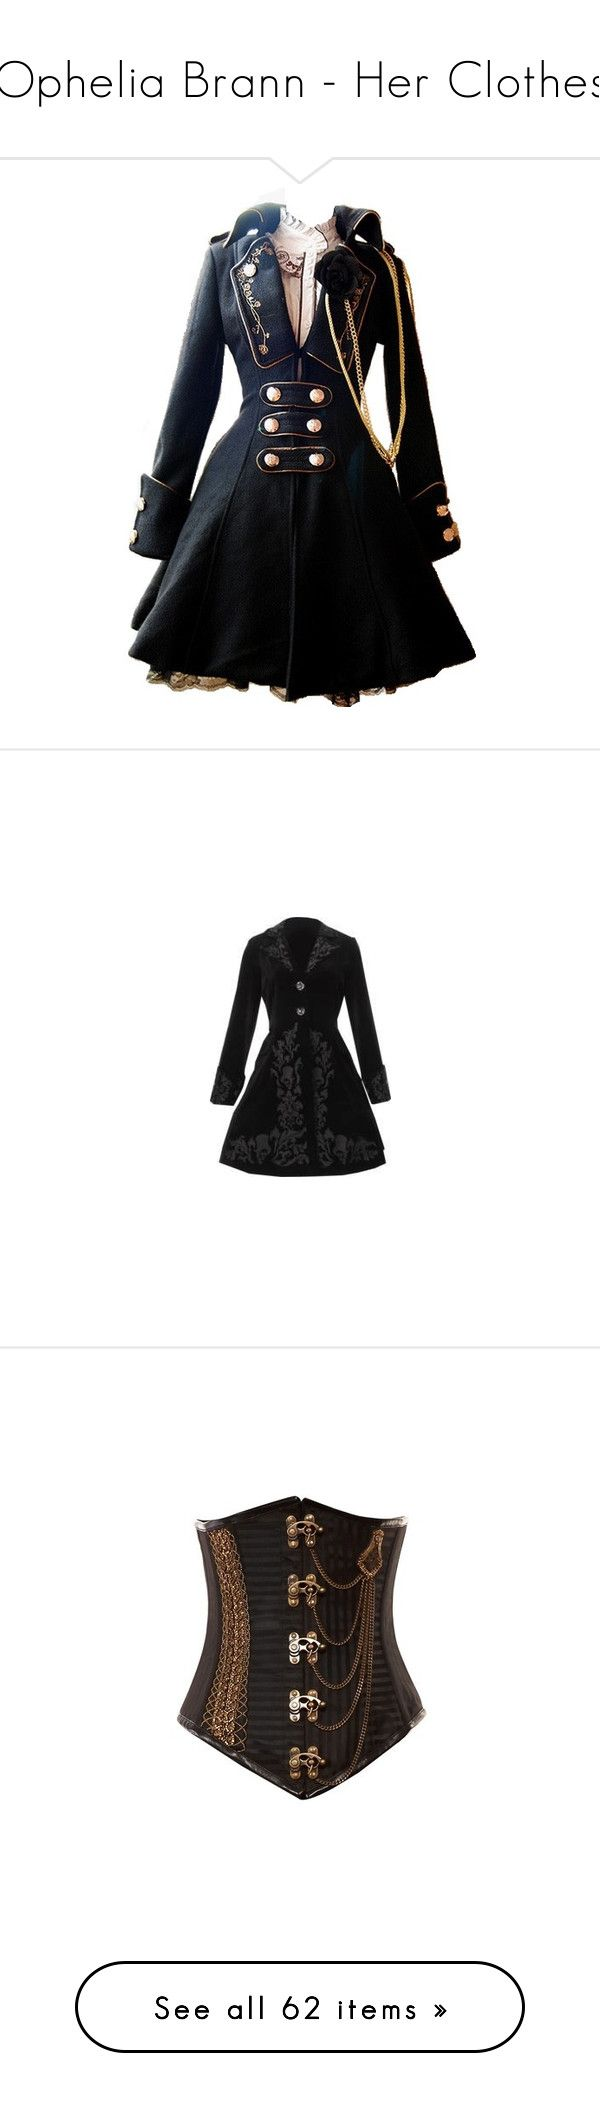 """Ophelia Brann - Her Clothes"" by hecate-supreme ❤ liked on Polyvore featuring dresses, jackets, coats, steampunk, outerwear, gothic velvet coat, velvet dress coat, goth coat, victorian coat and hell bunny"